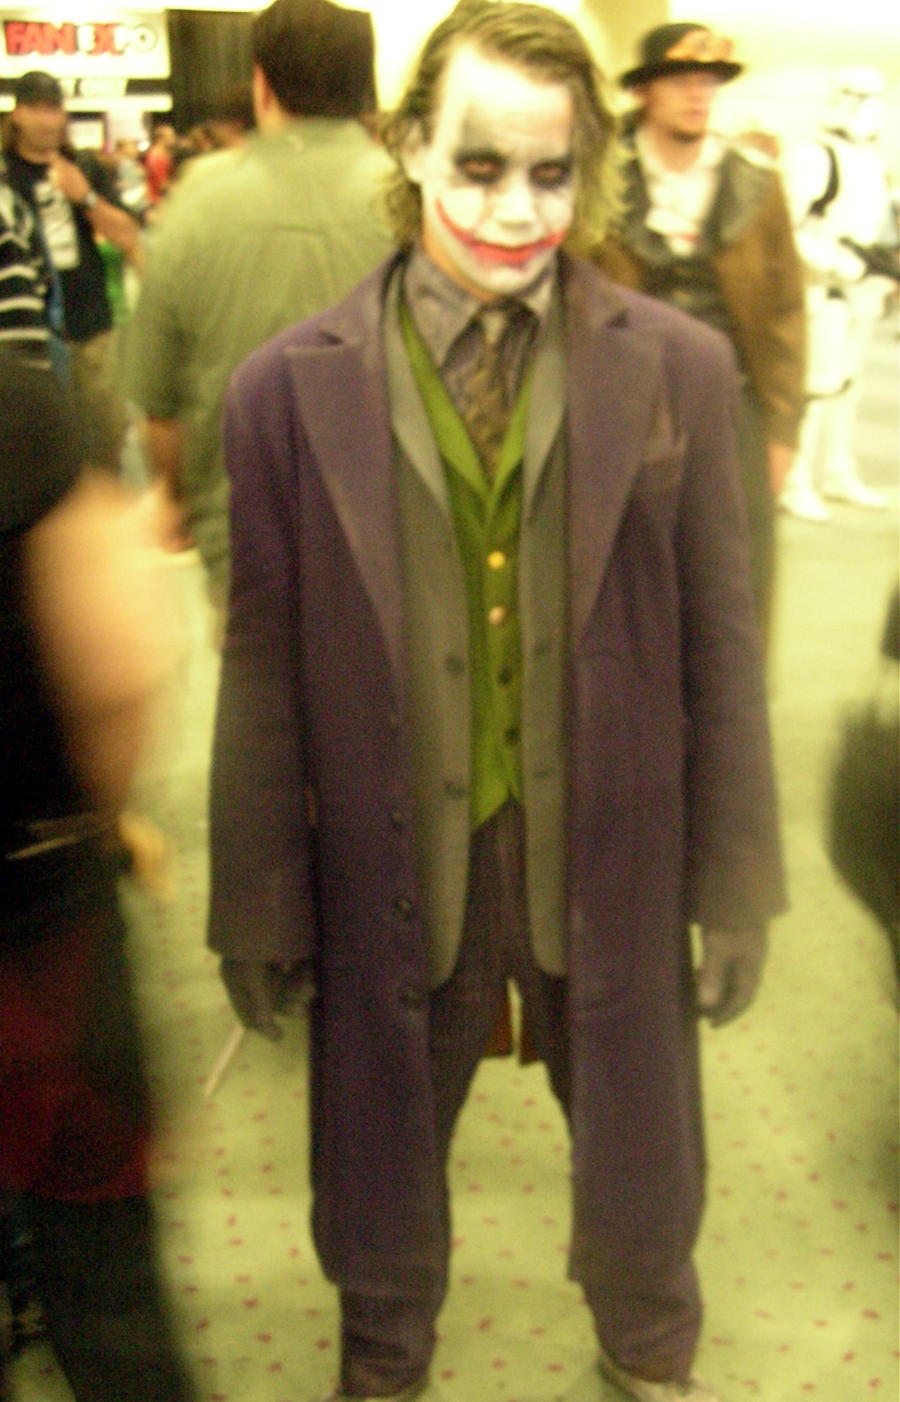 SFX-Fan Expo Cosplay 2009 13 (The Joker) by Neville6000